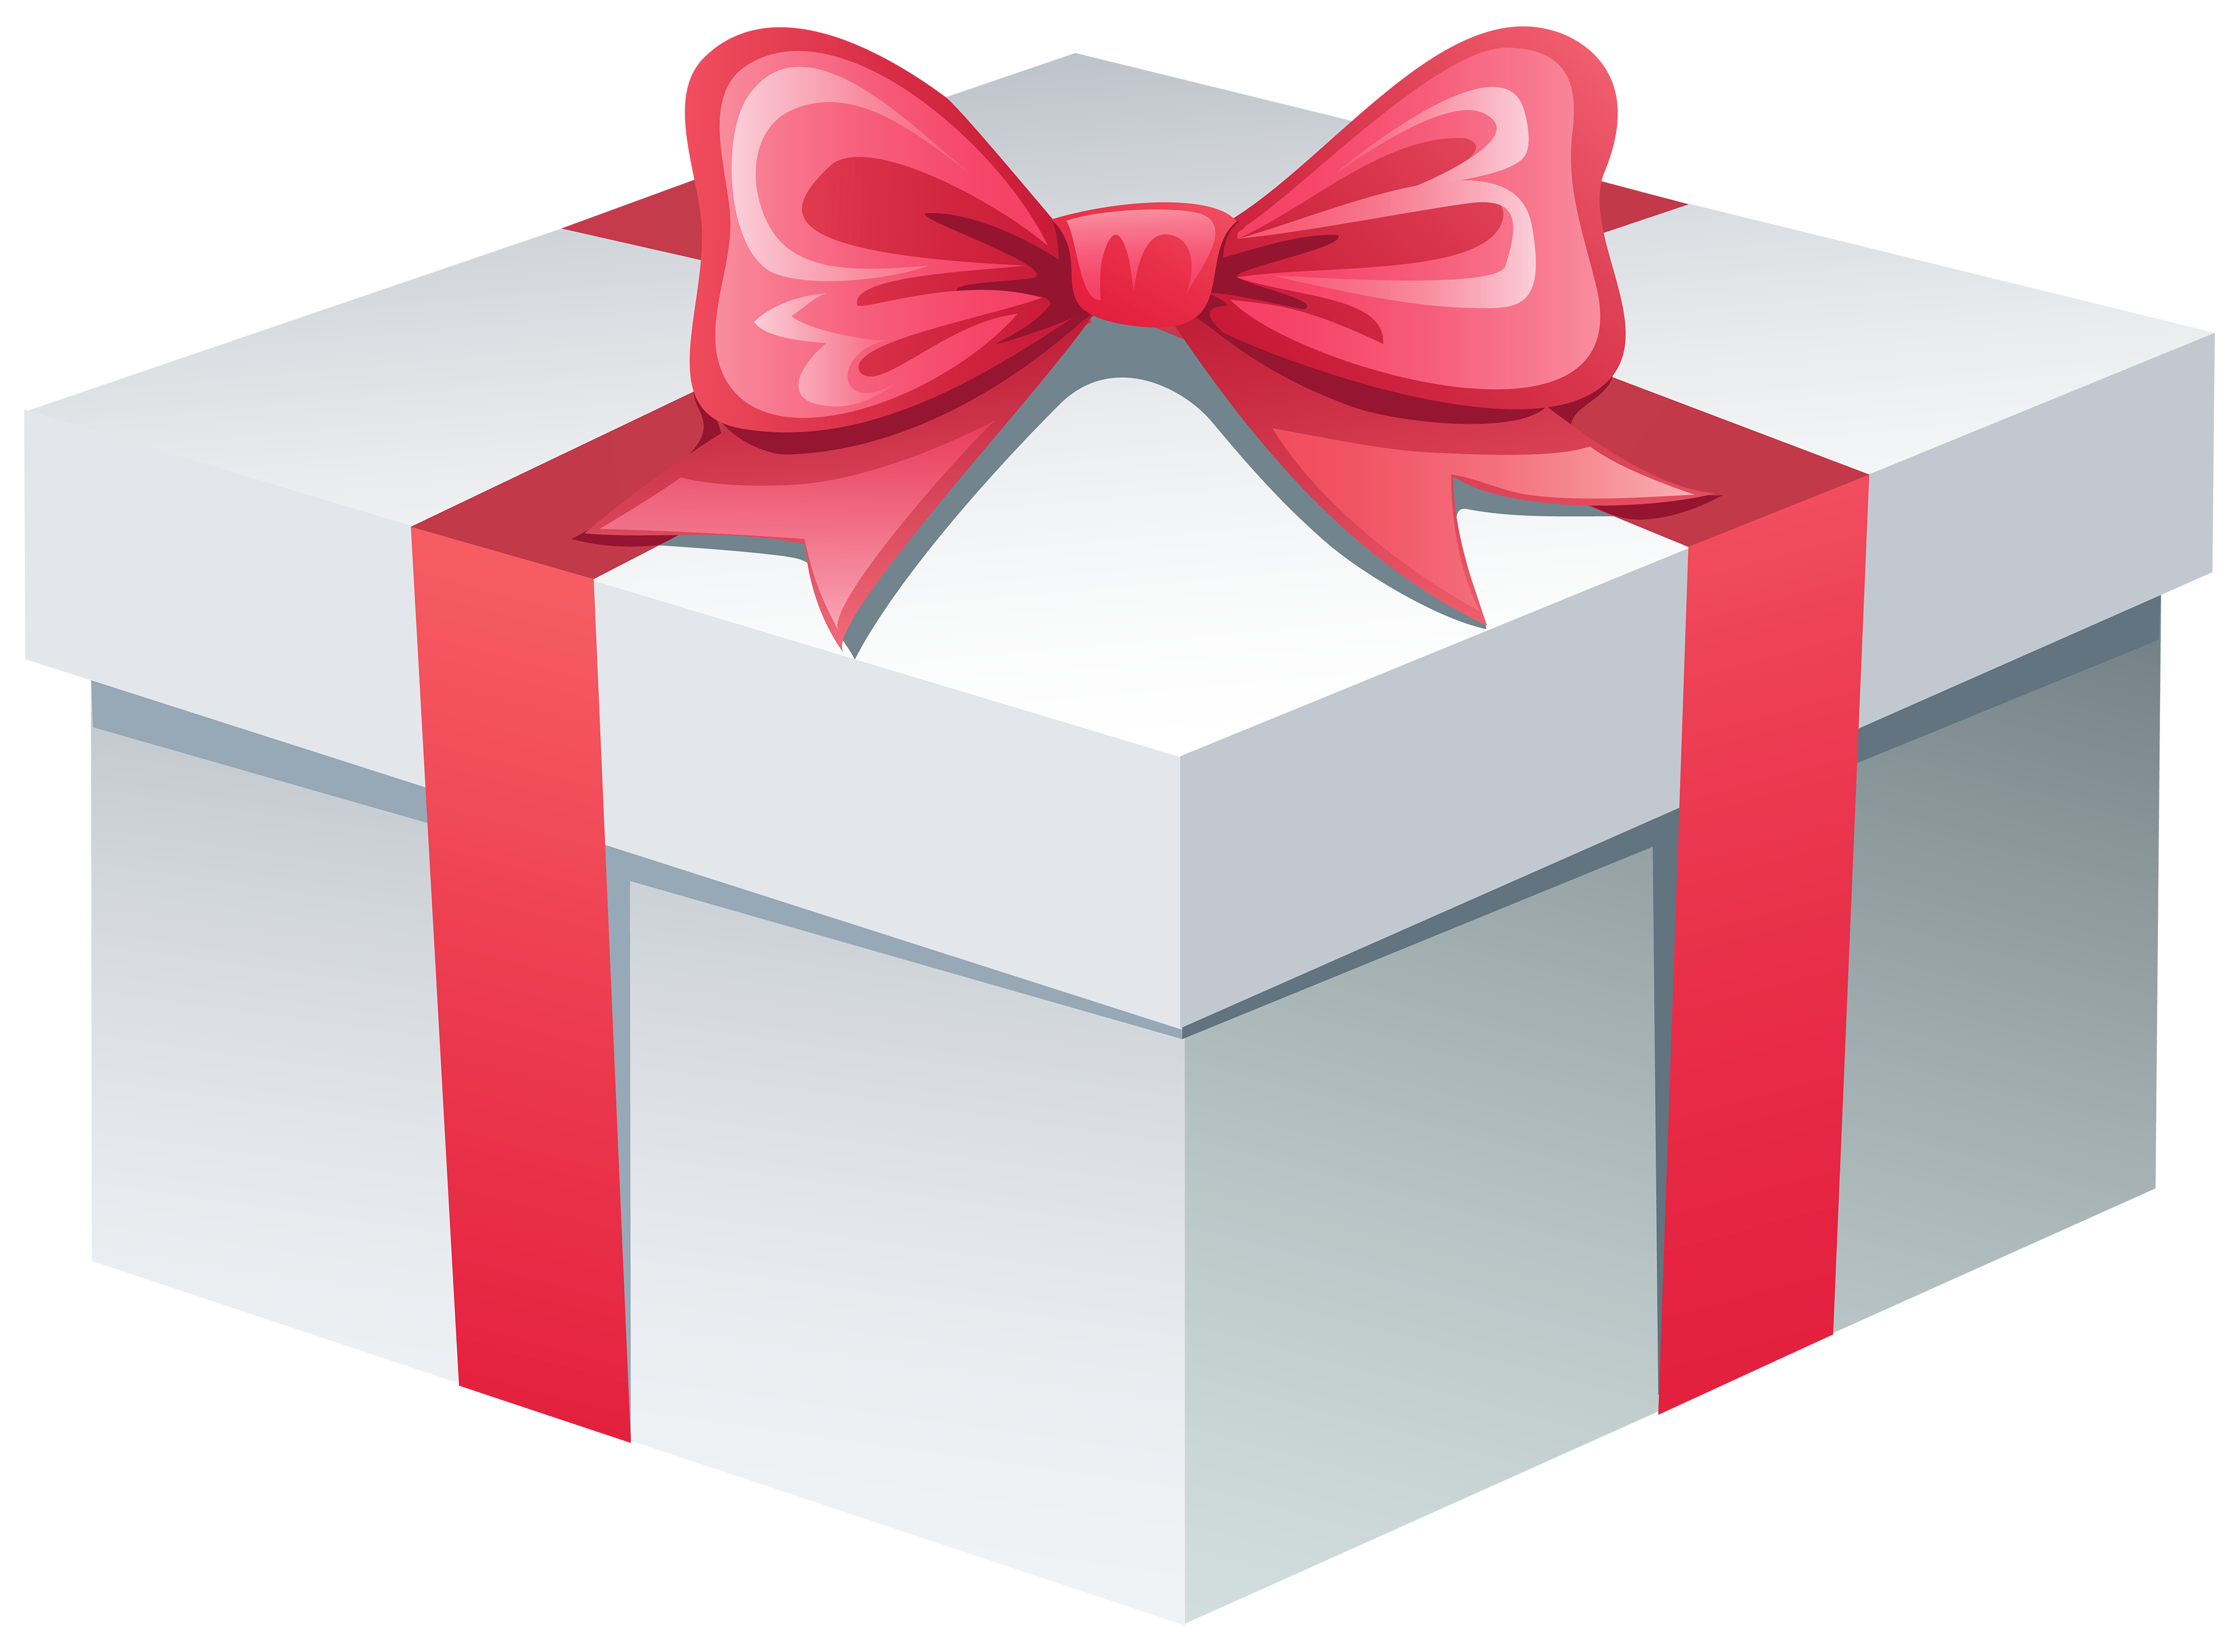 gifts clipart teal